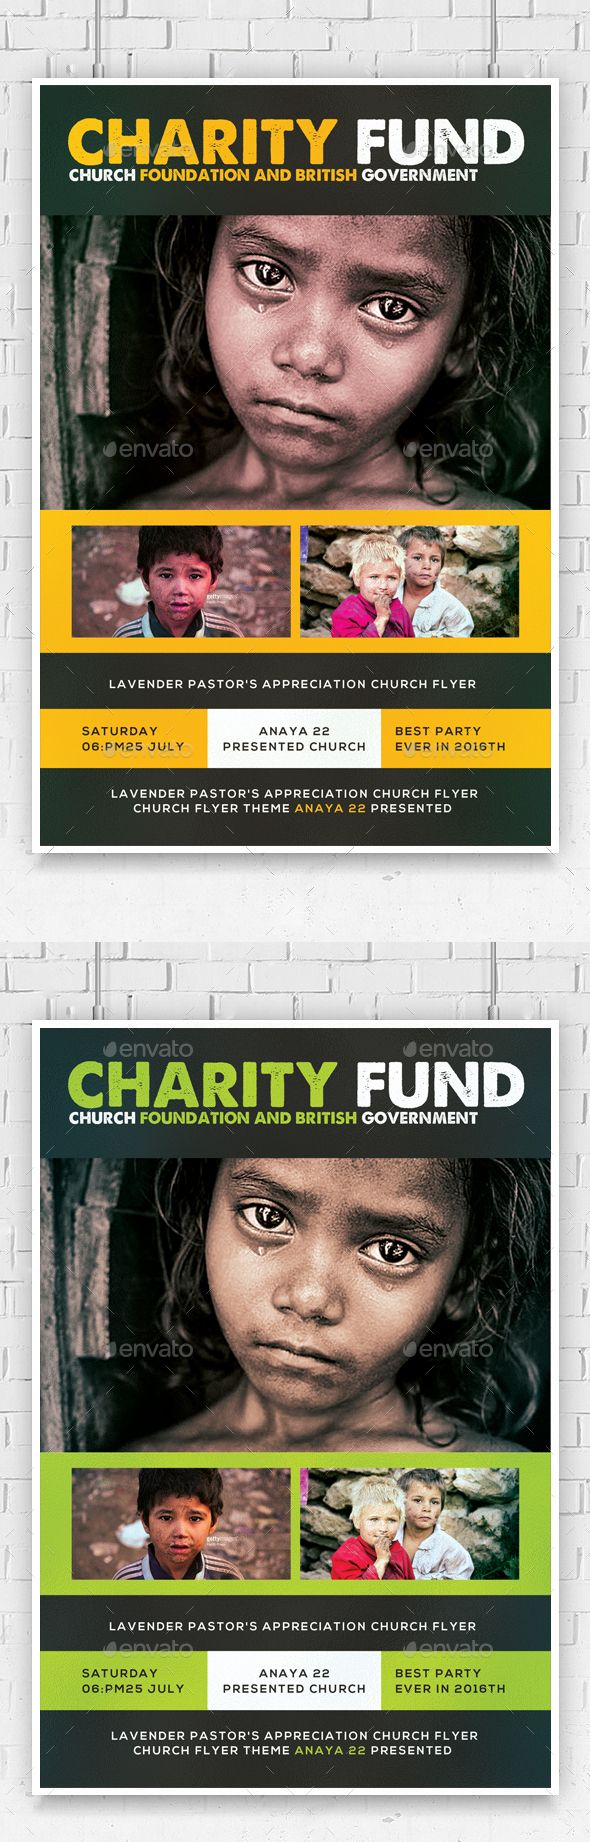 Charity Foundation Church Flyer Template